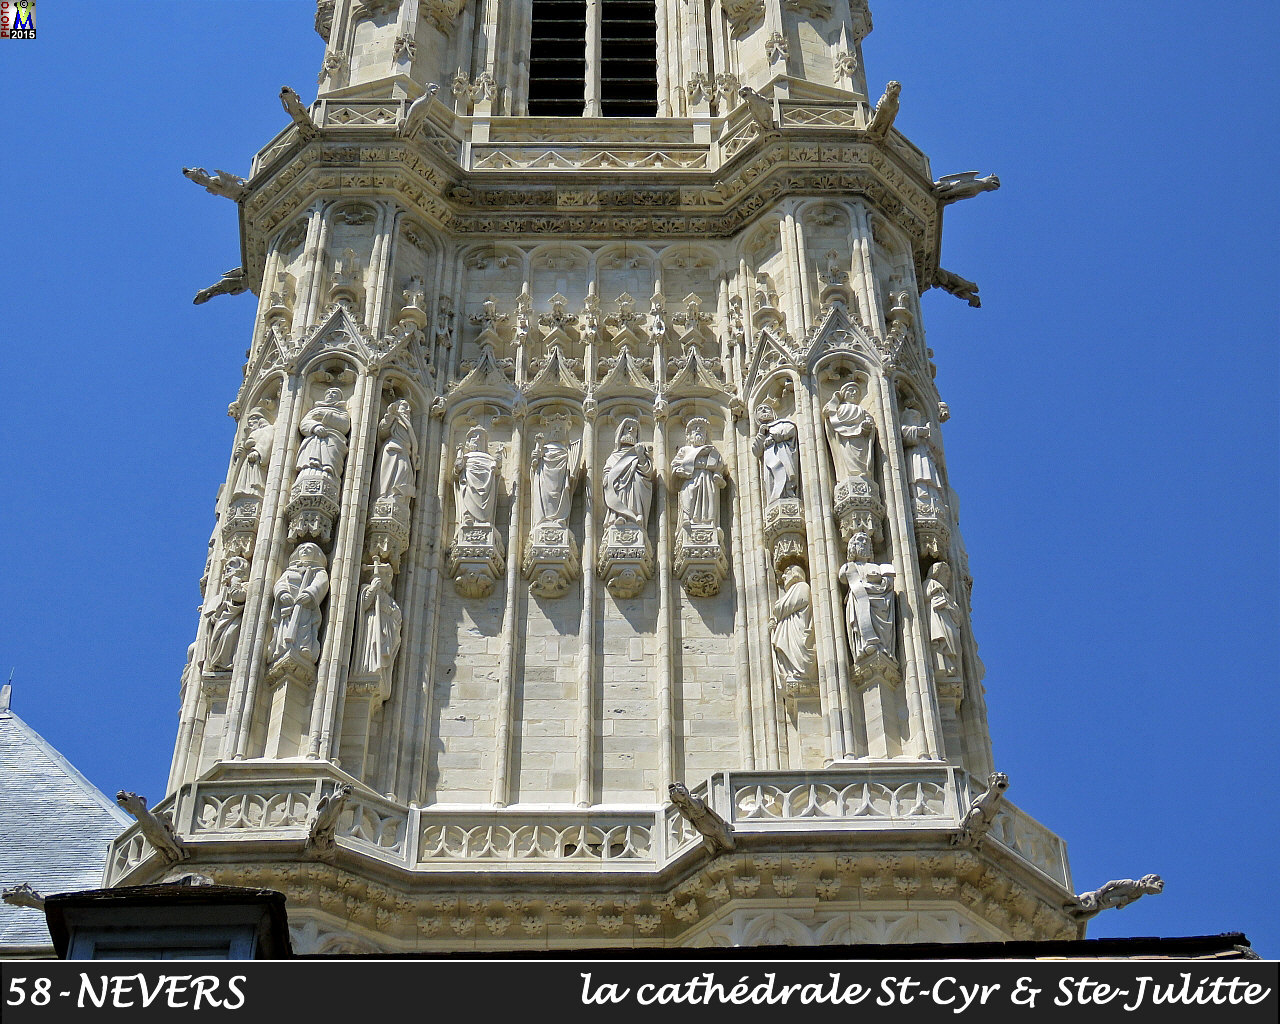 58NEVERS-cathedrale_120.jpg